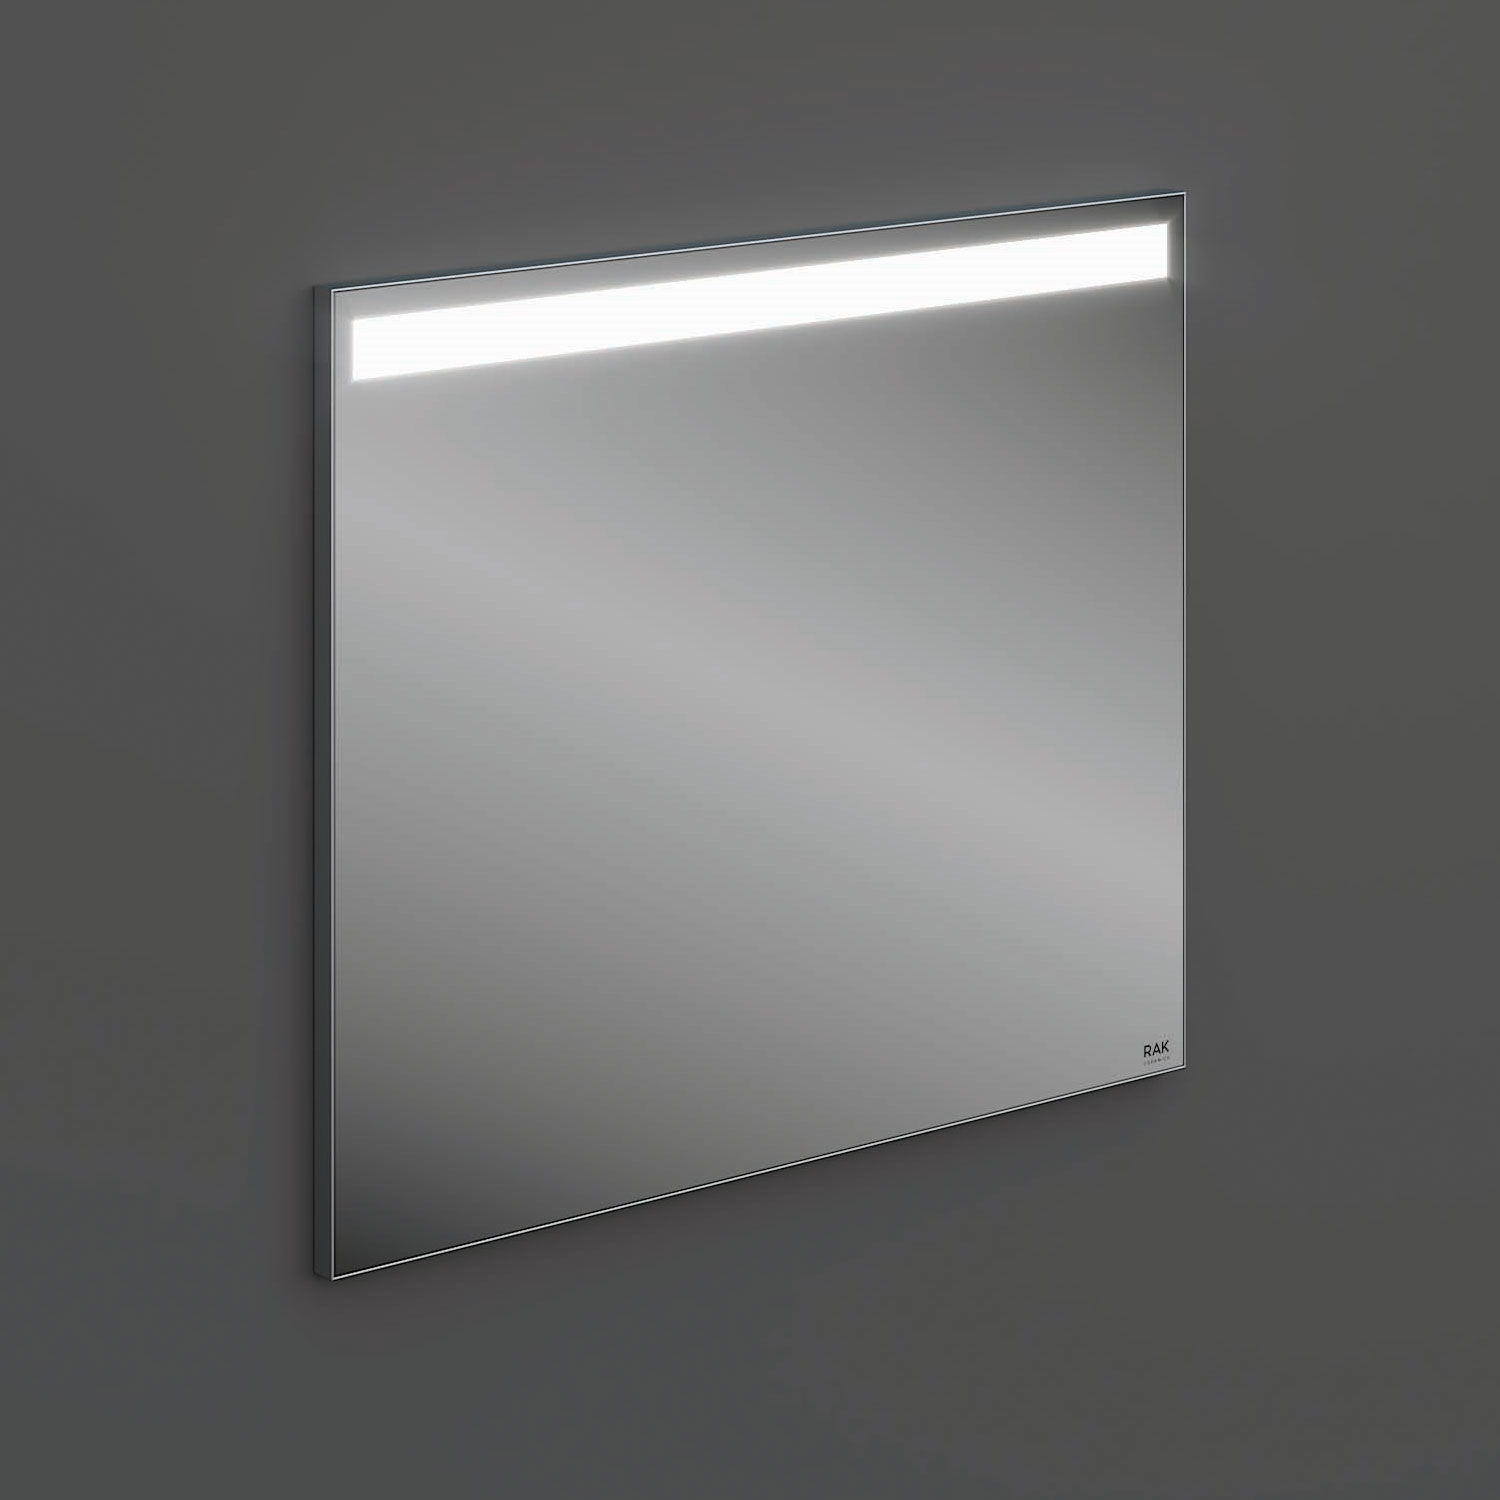 RAK Joy Wall Hung Bathroom Mirror with LED Mirror 680mm H x 800mm W